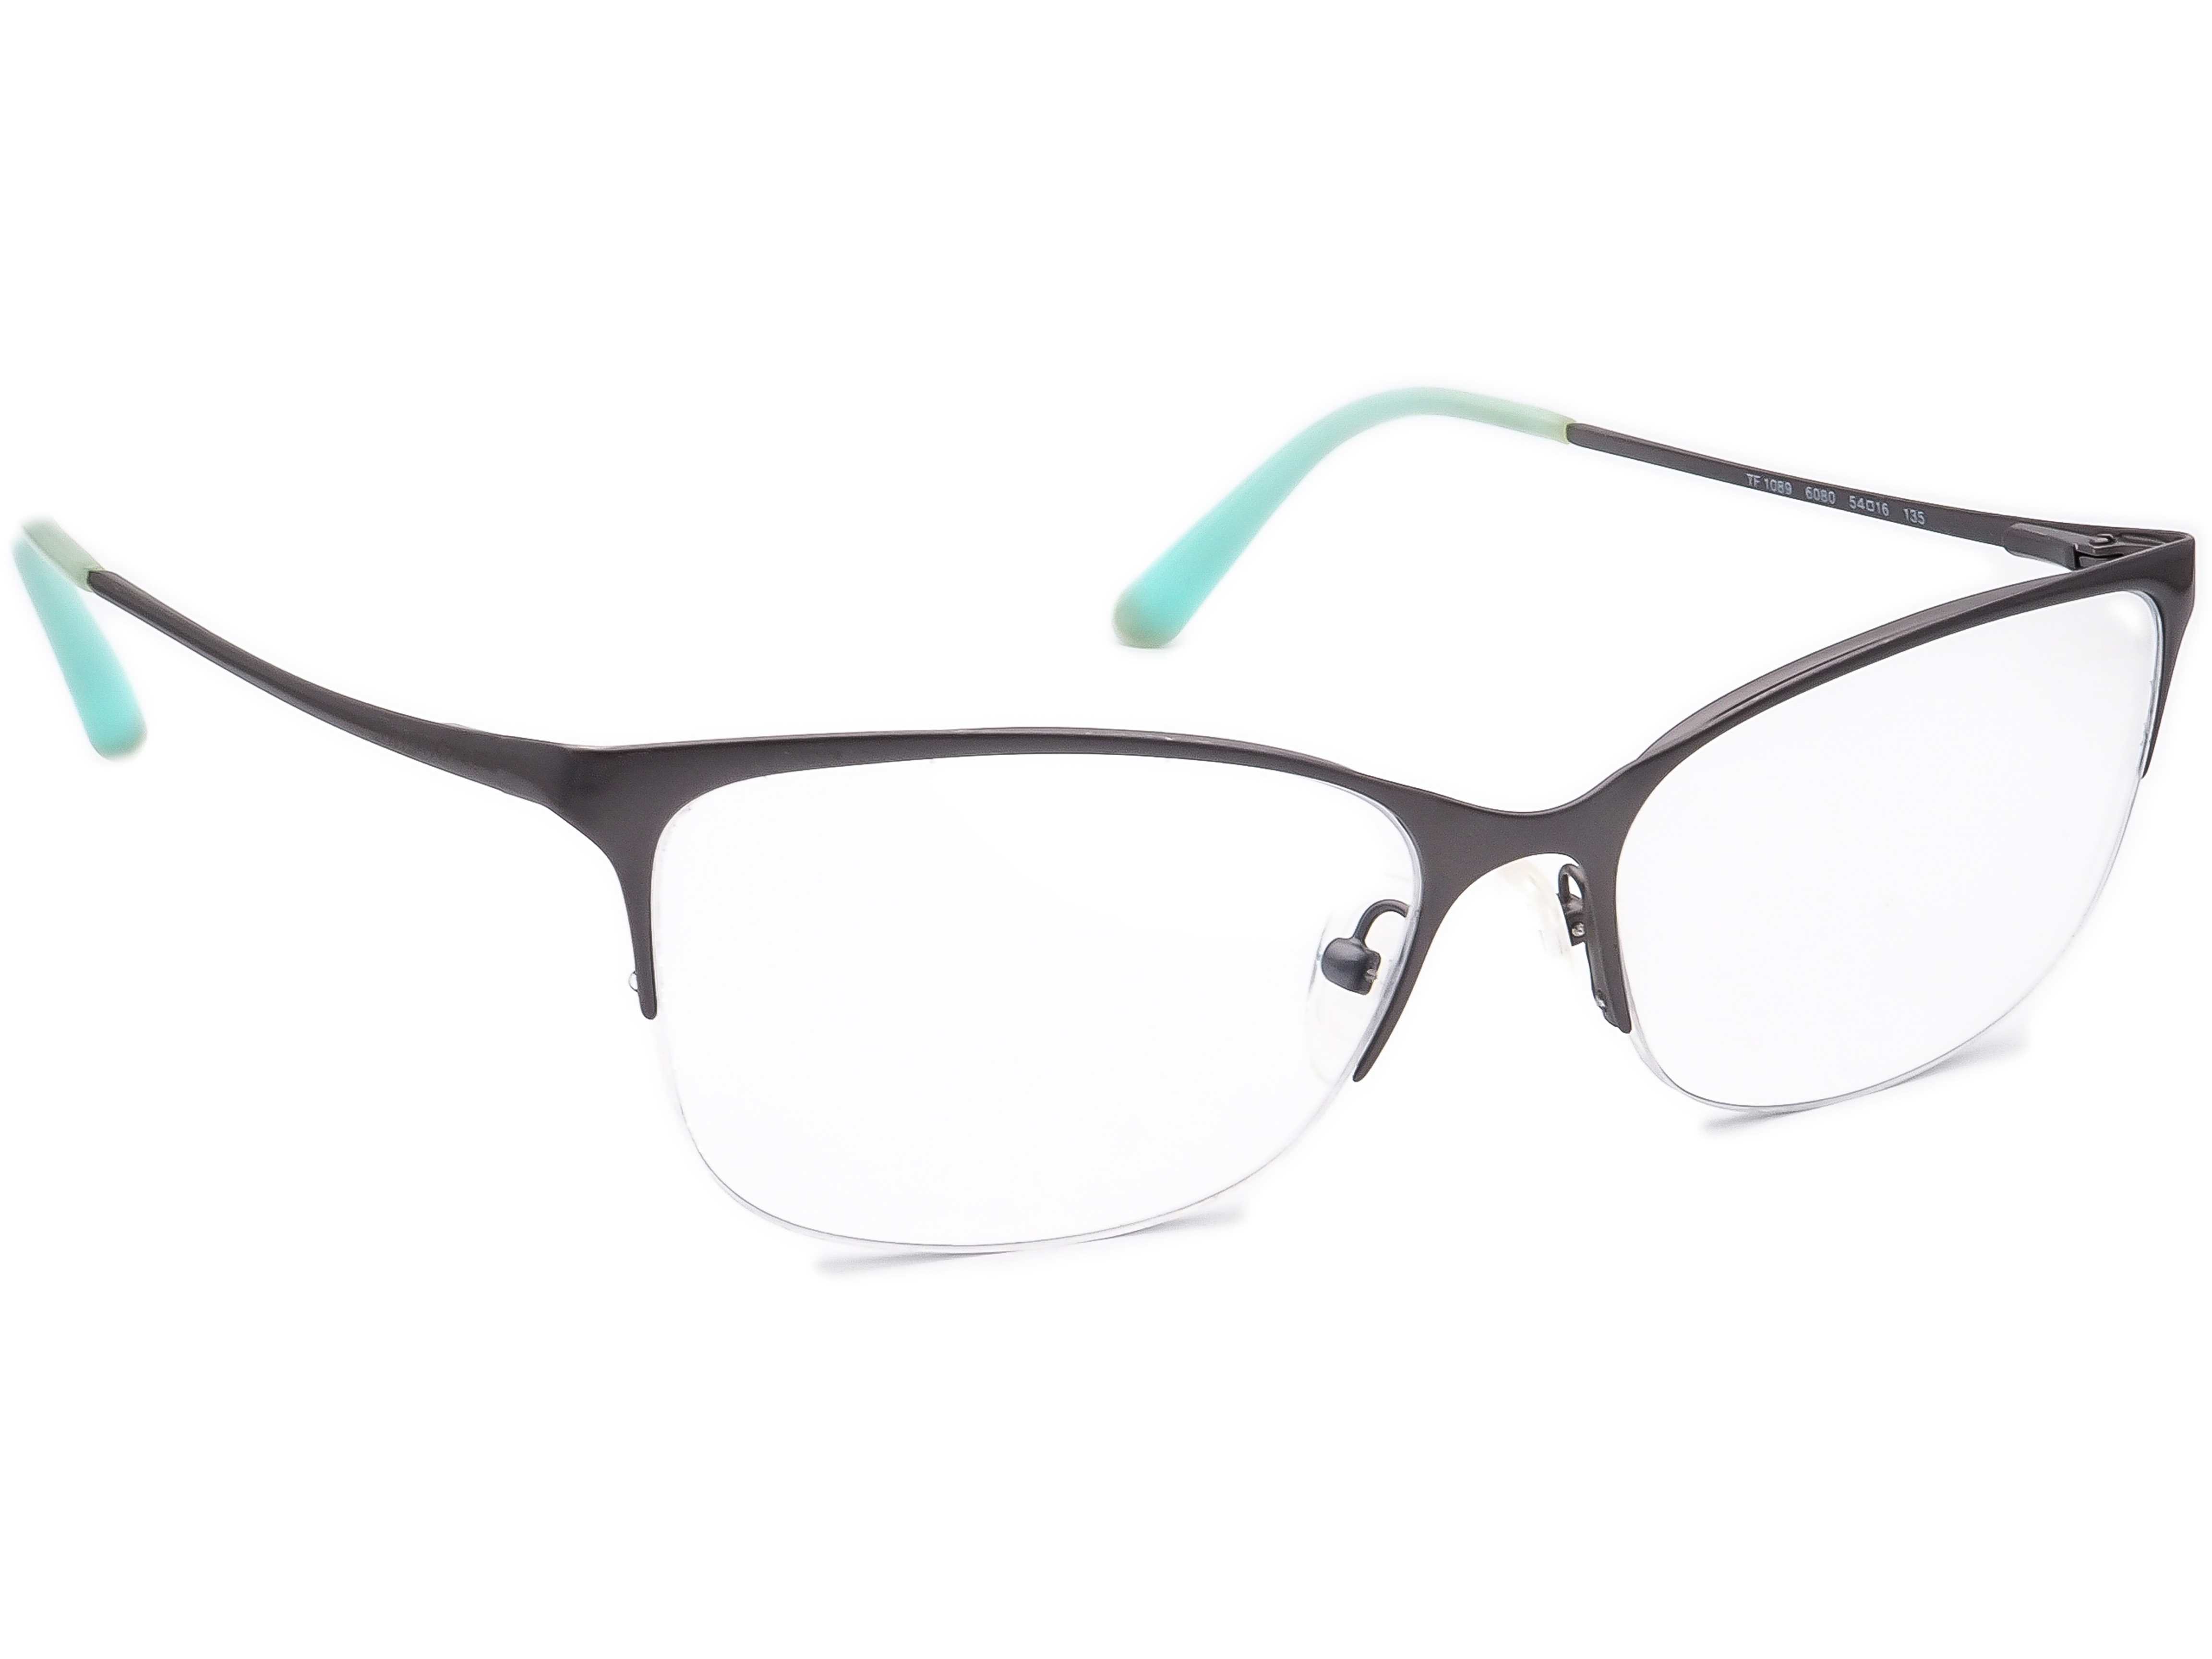 Tiffany & Co. TF 1089 6080 Eyeglasses